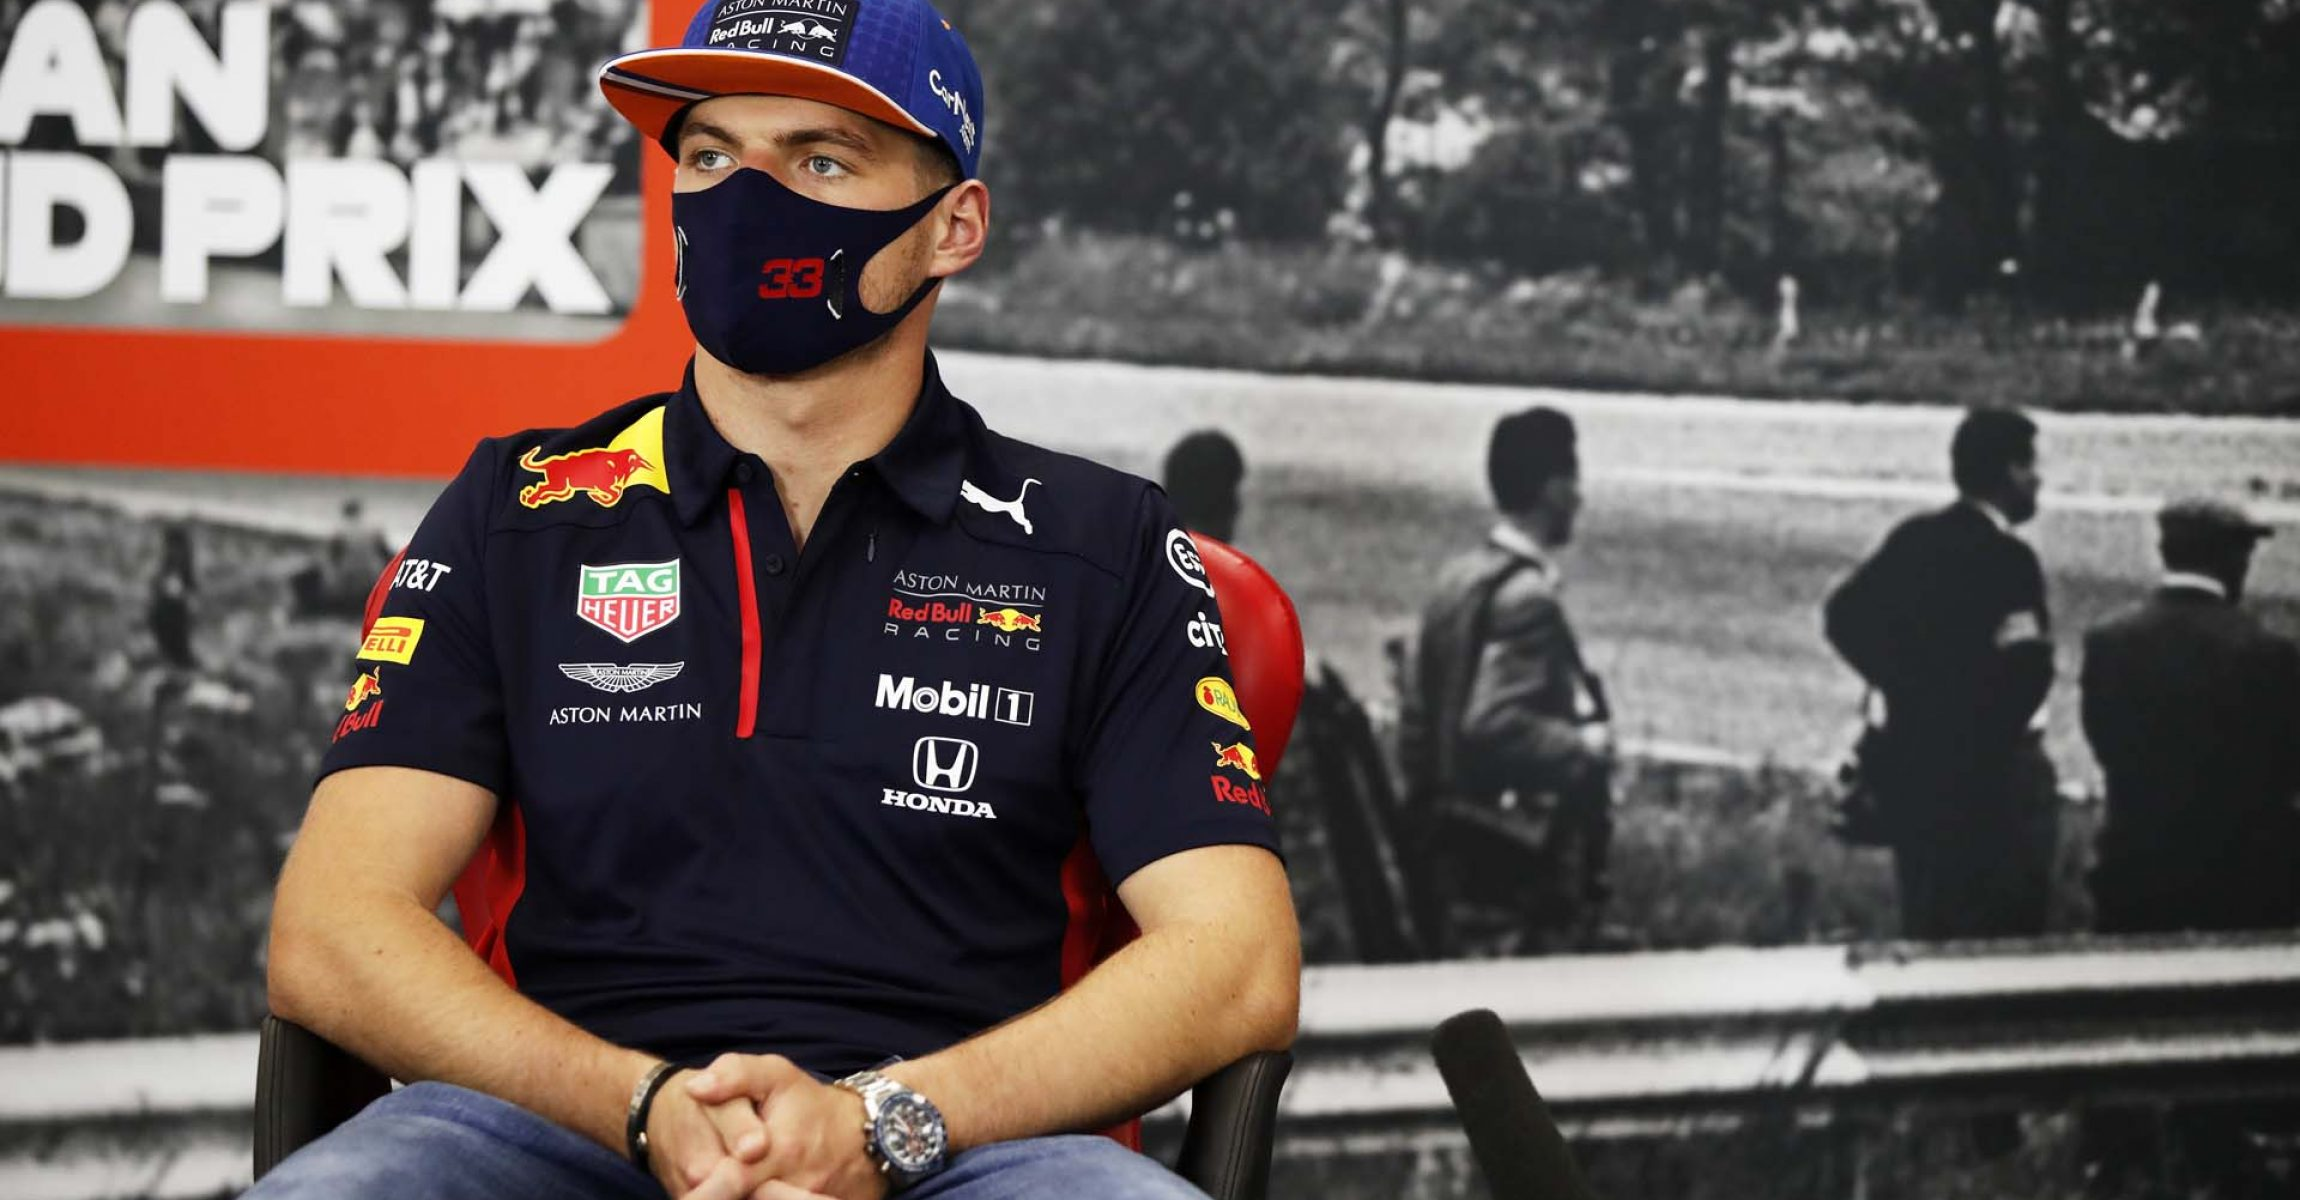 SPA, BELGIUM - AUGUST 27: Max Verstappen of Netherlands and Red Bull Racing talks in the Drivers Press Conference during previews ahead of the F1 Grand Prix of Belgium at Circuit de Spa-Francorchamps on August 27, 2020 in Spa, Belgium. (Photo by DPPI/Pool via Getty Images) // Getty Images / Red Bull Content Pool  // SI202008270280 // Usage for editorial use only //